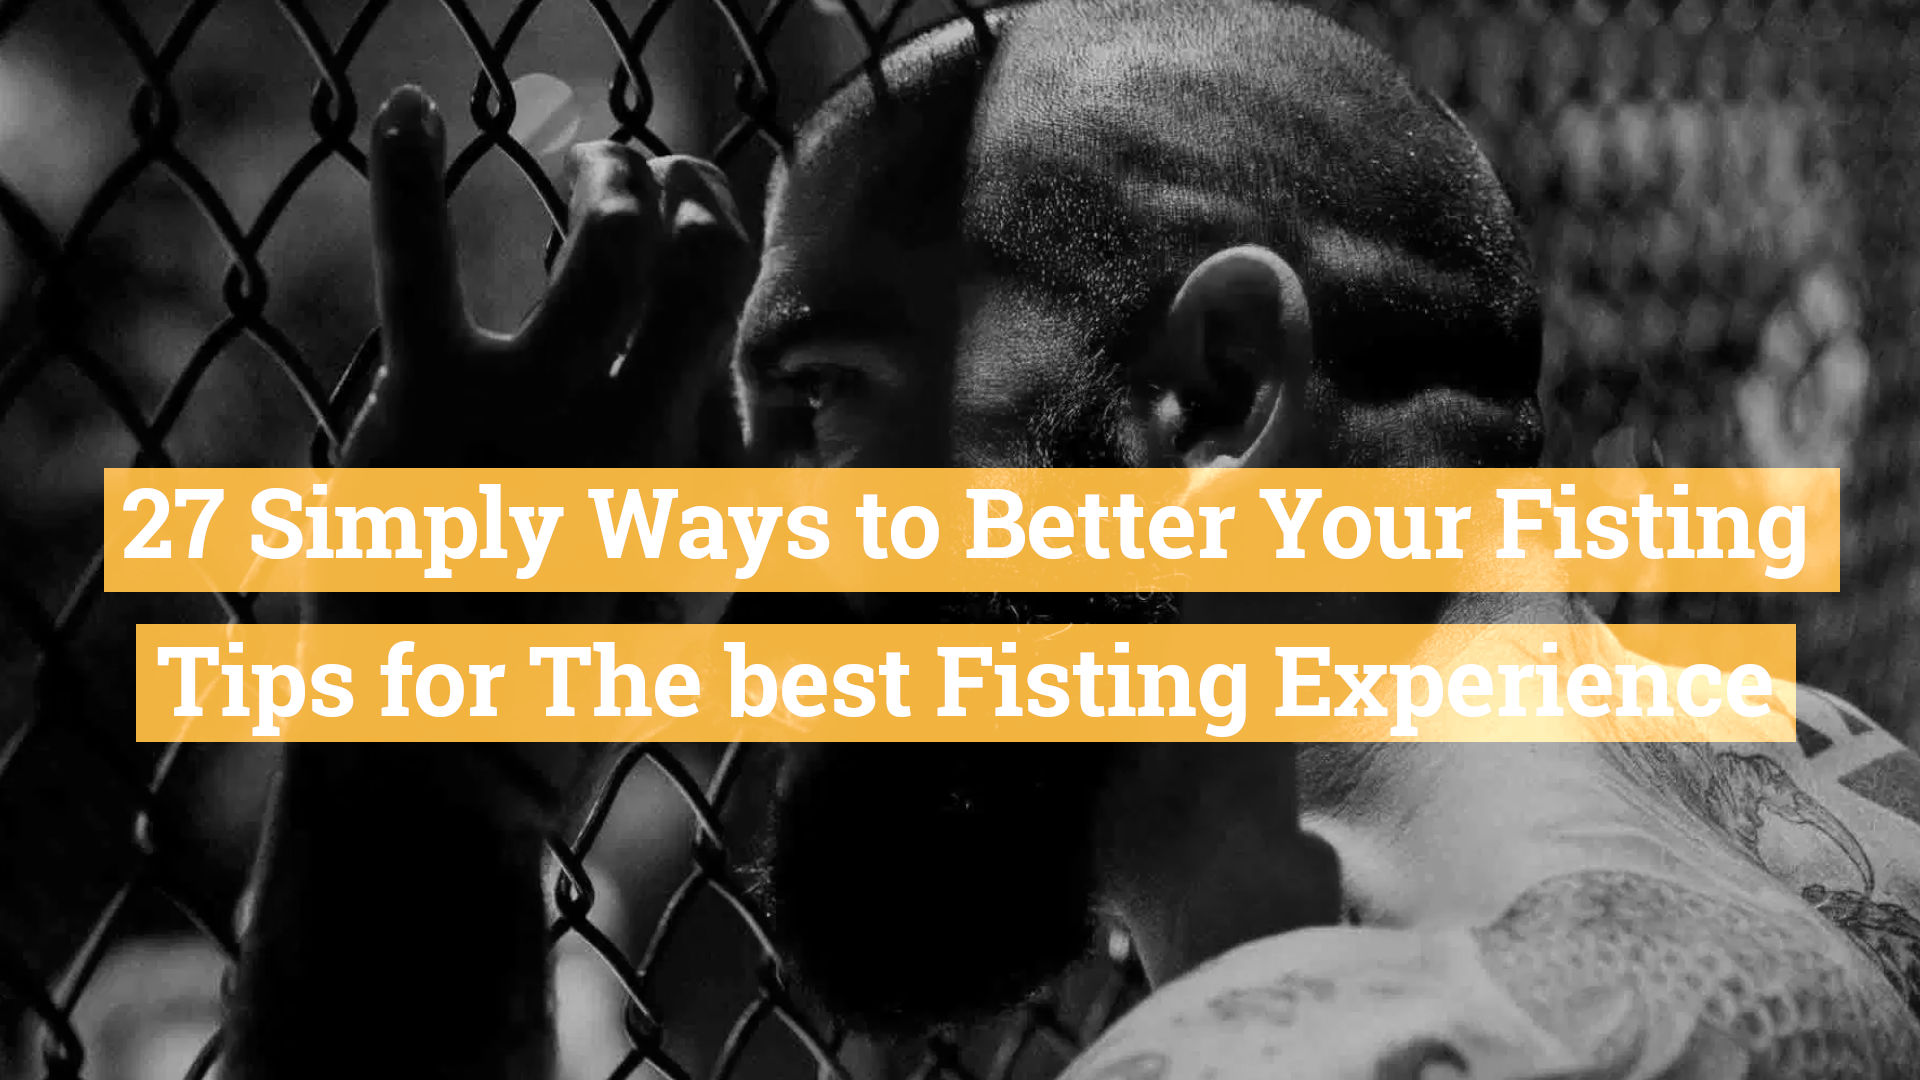 27 Simply Ways to Better Your Fisting Skills – Tips for better Anal Fisting Enjoyment